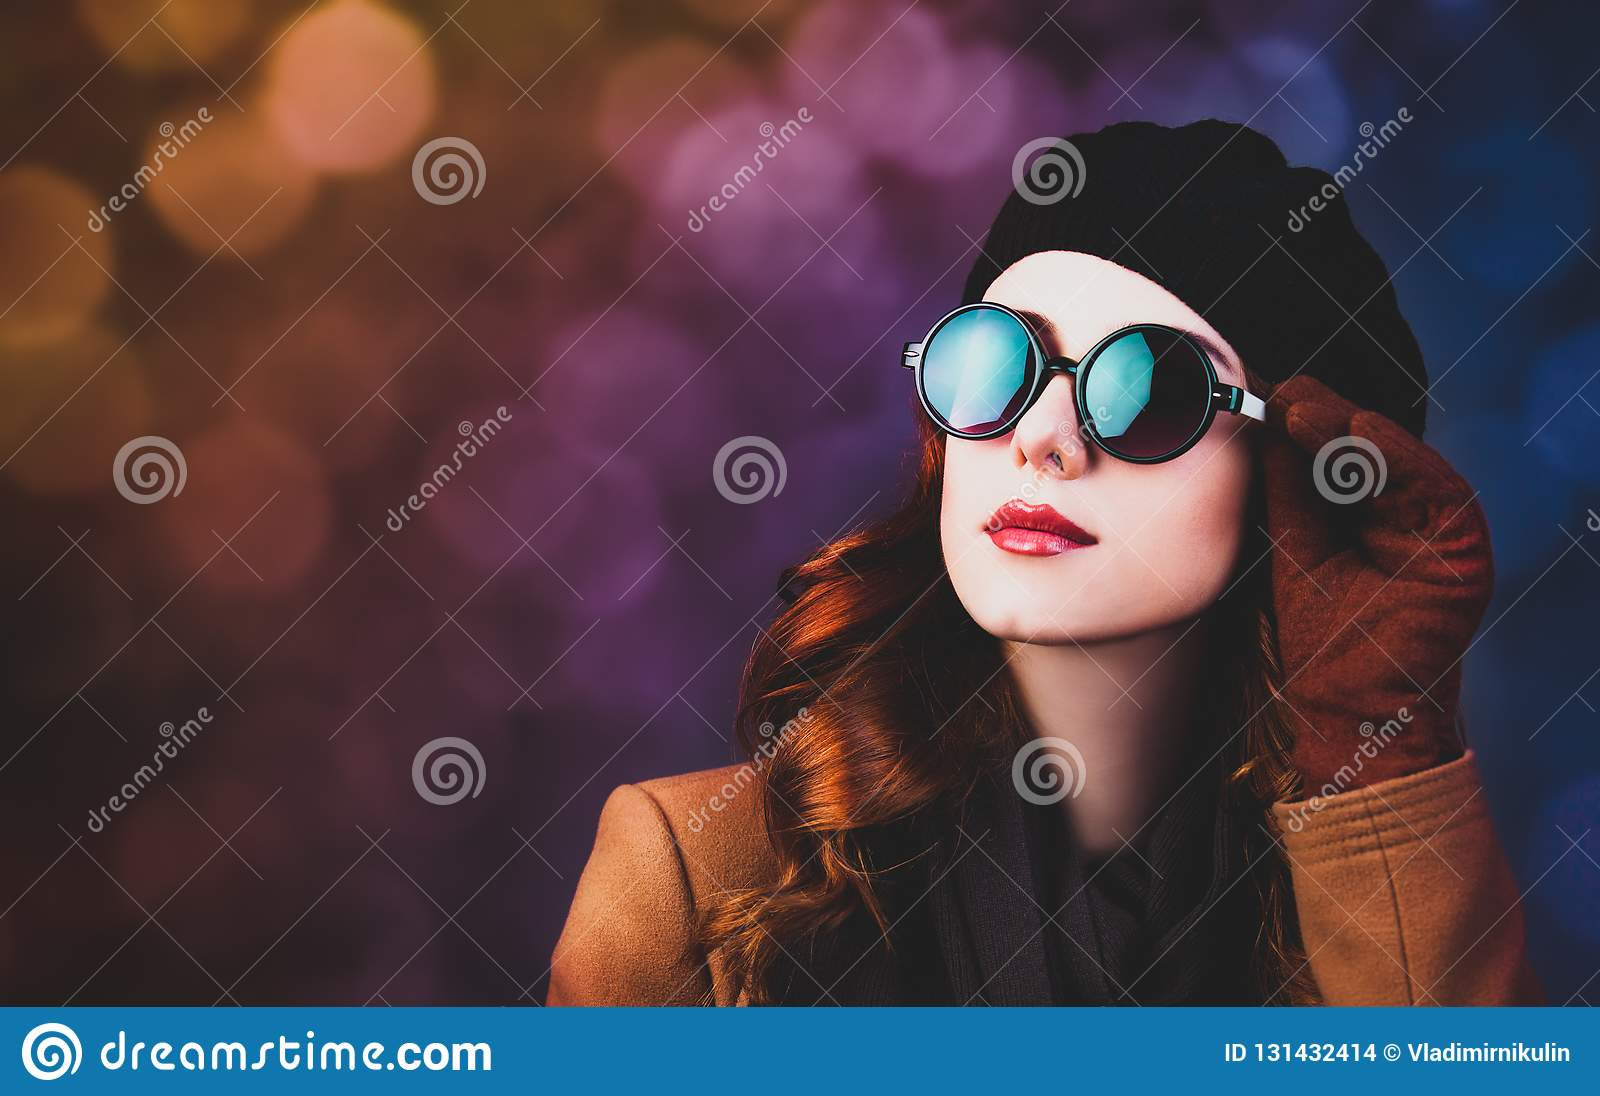 Style redhead woman in sunglasses and coat